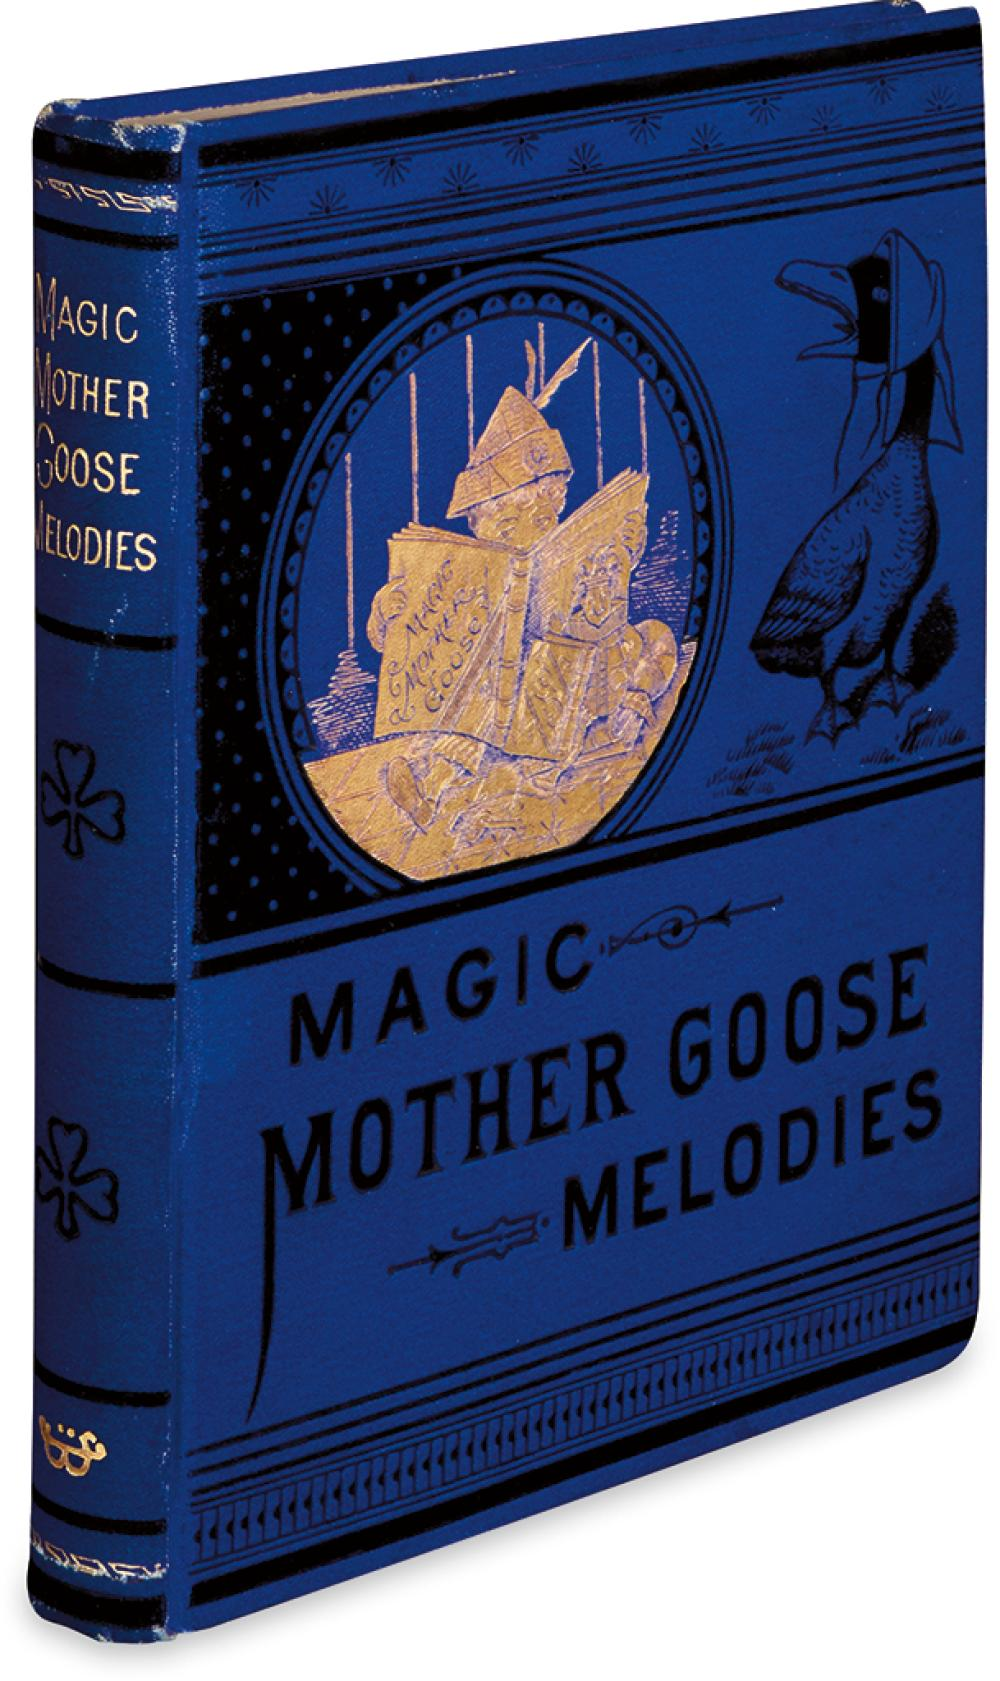 (CHILDREN''S LITERATURE.) (MOTHER GOOSE.) The Old Fashioned Mother Goose'' Melodies Complete with Magic Colored Pictures.